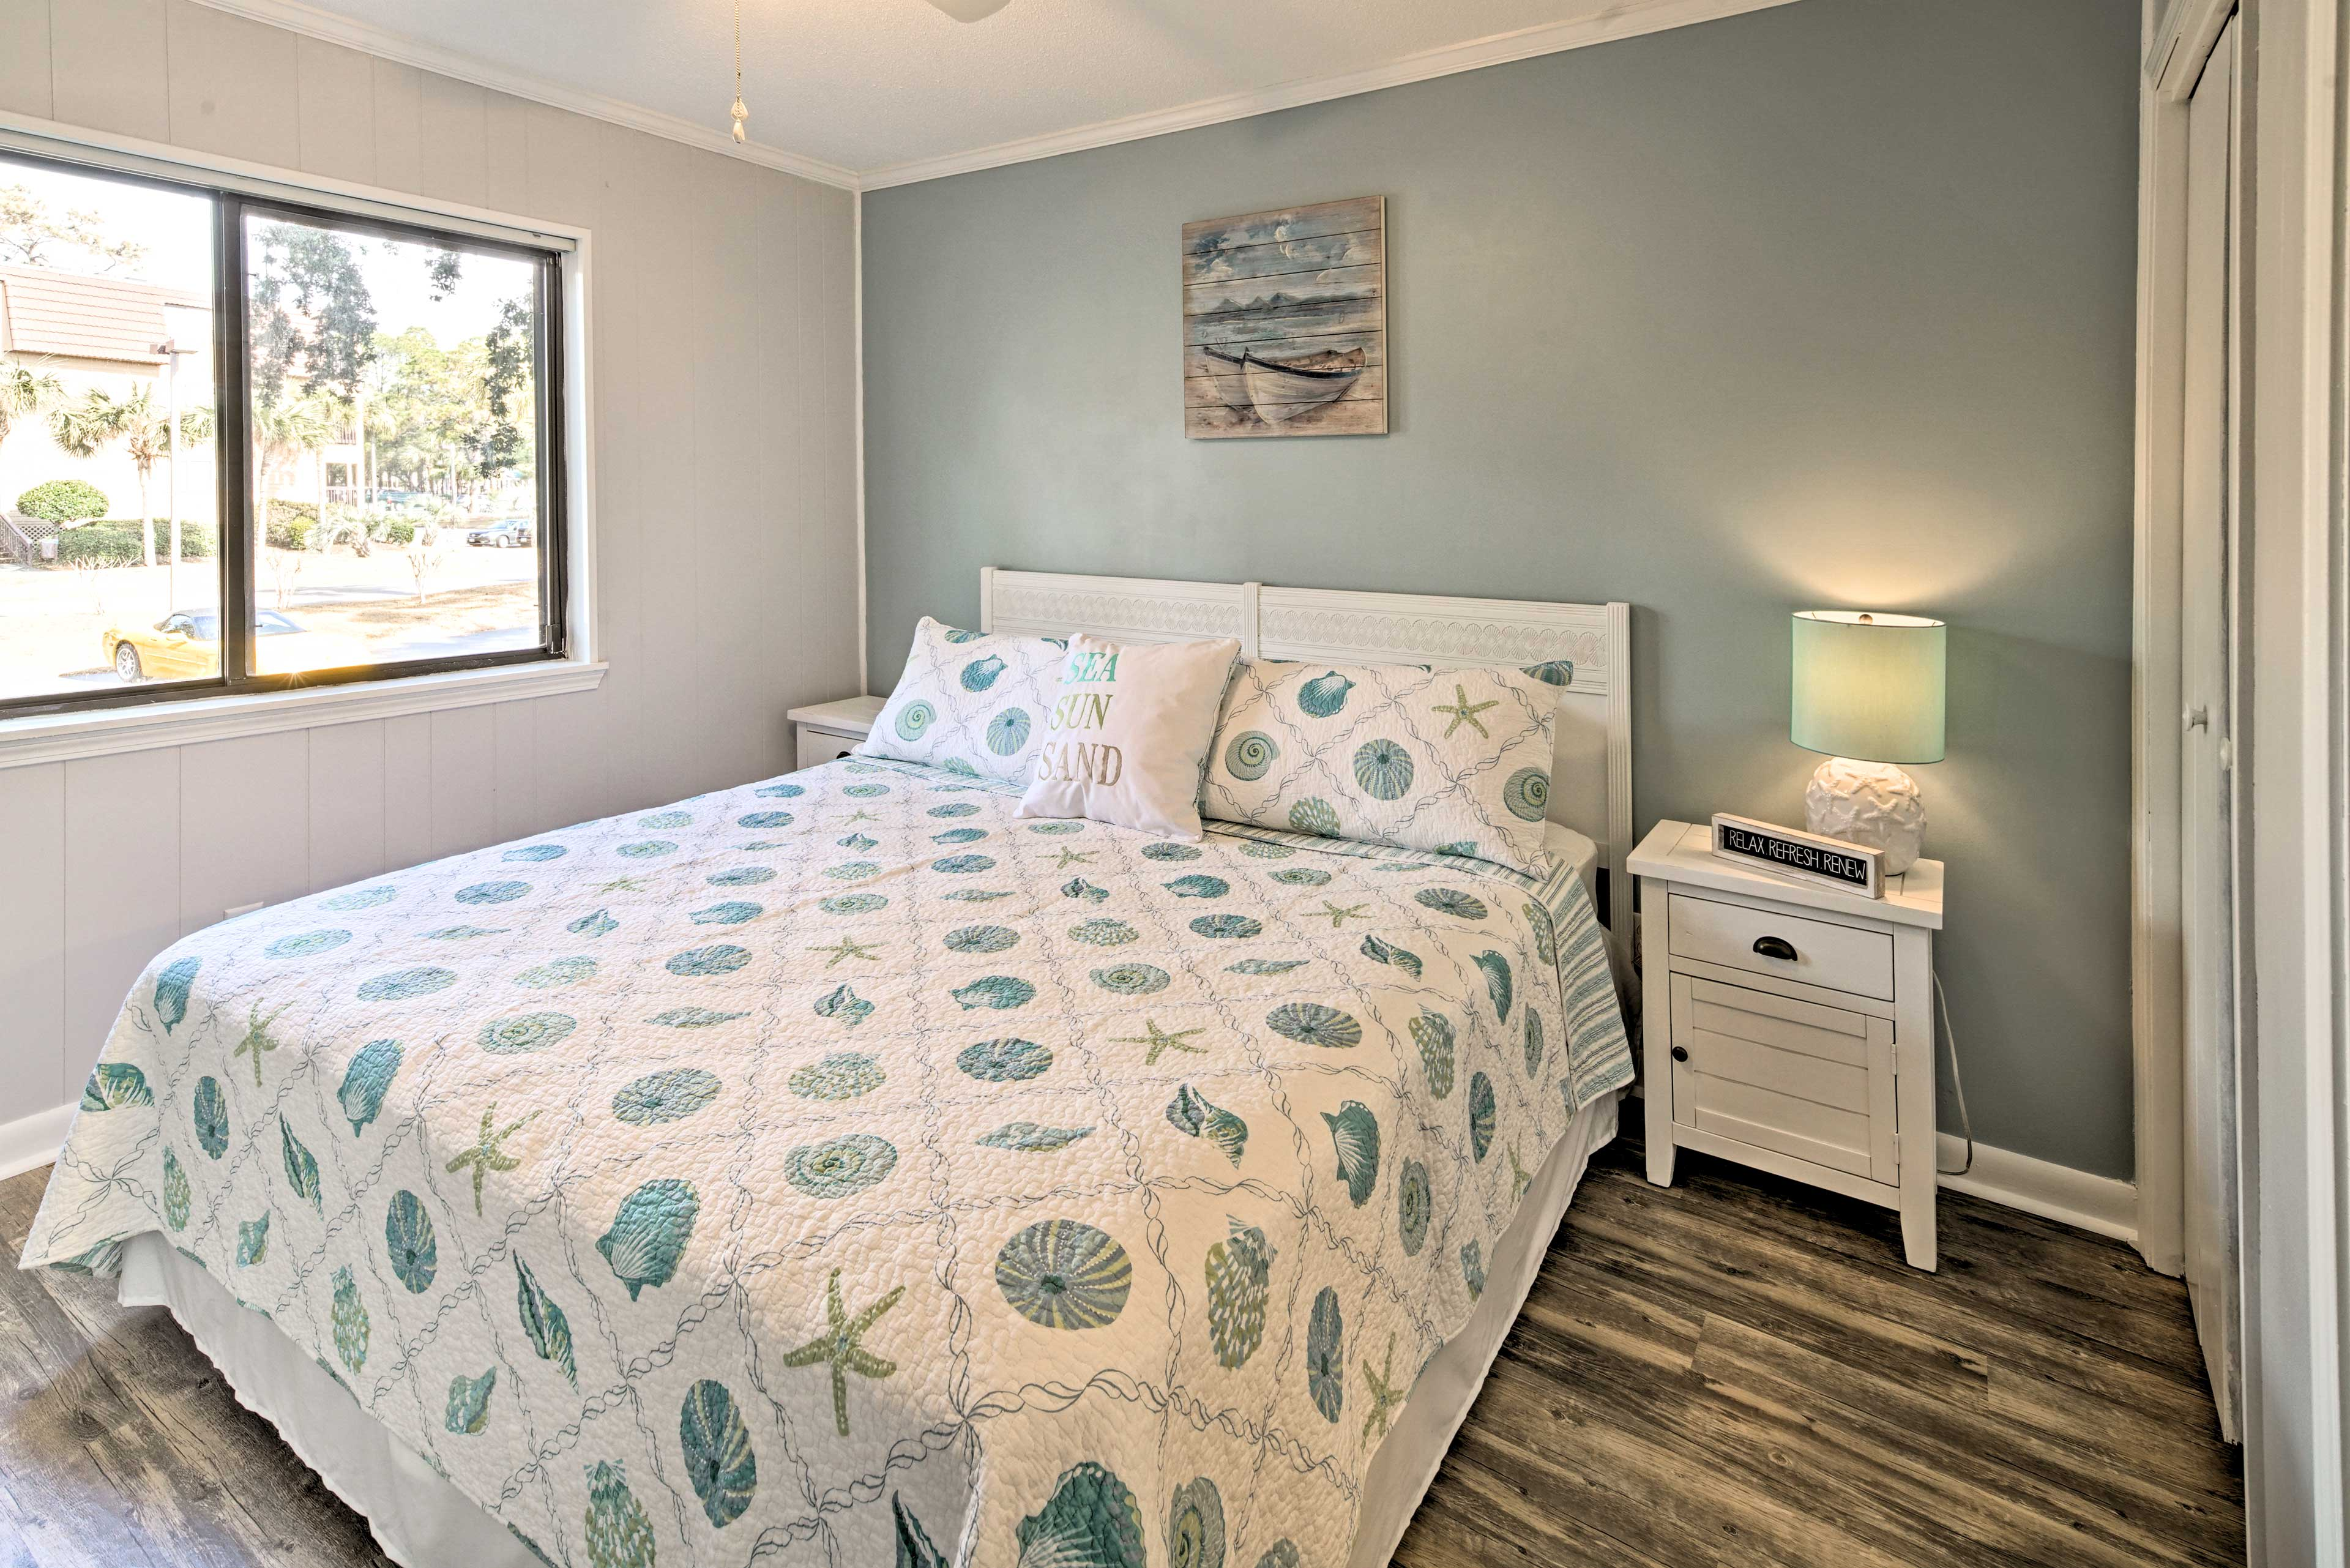 Rest easy on the plush king bed in the master bedroom.